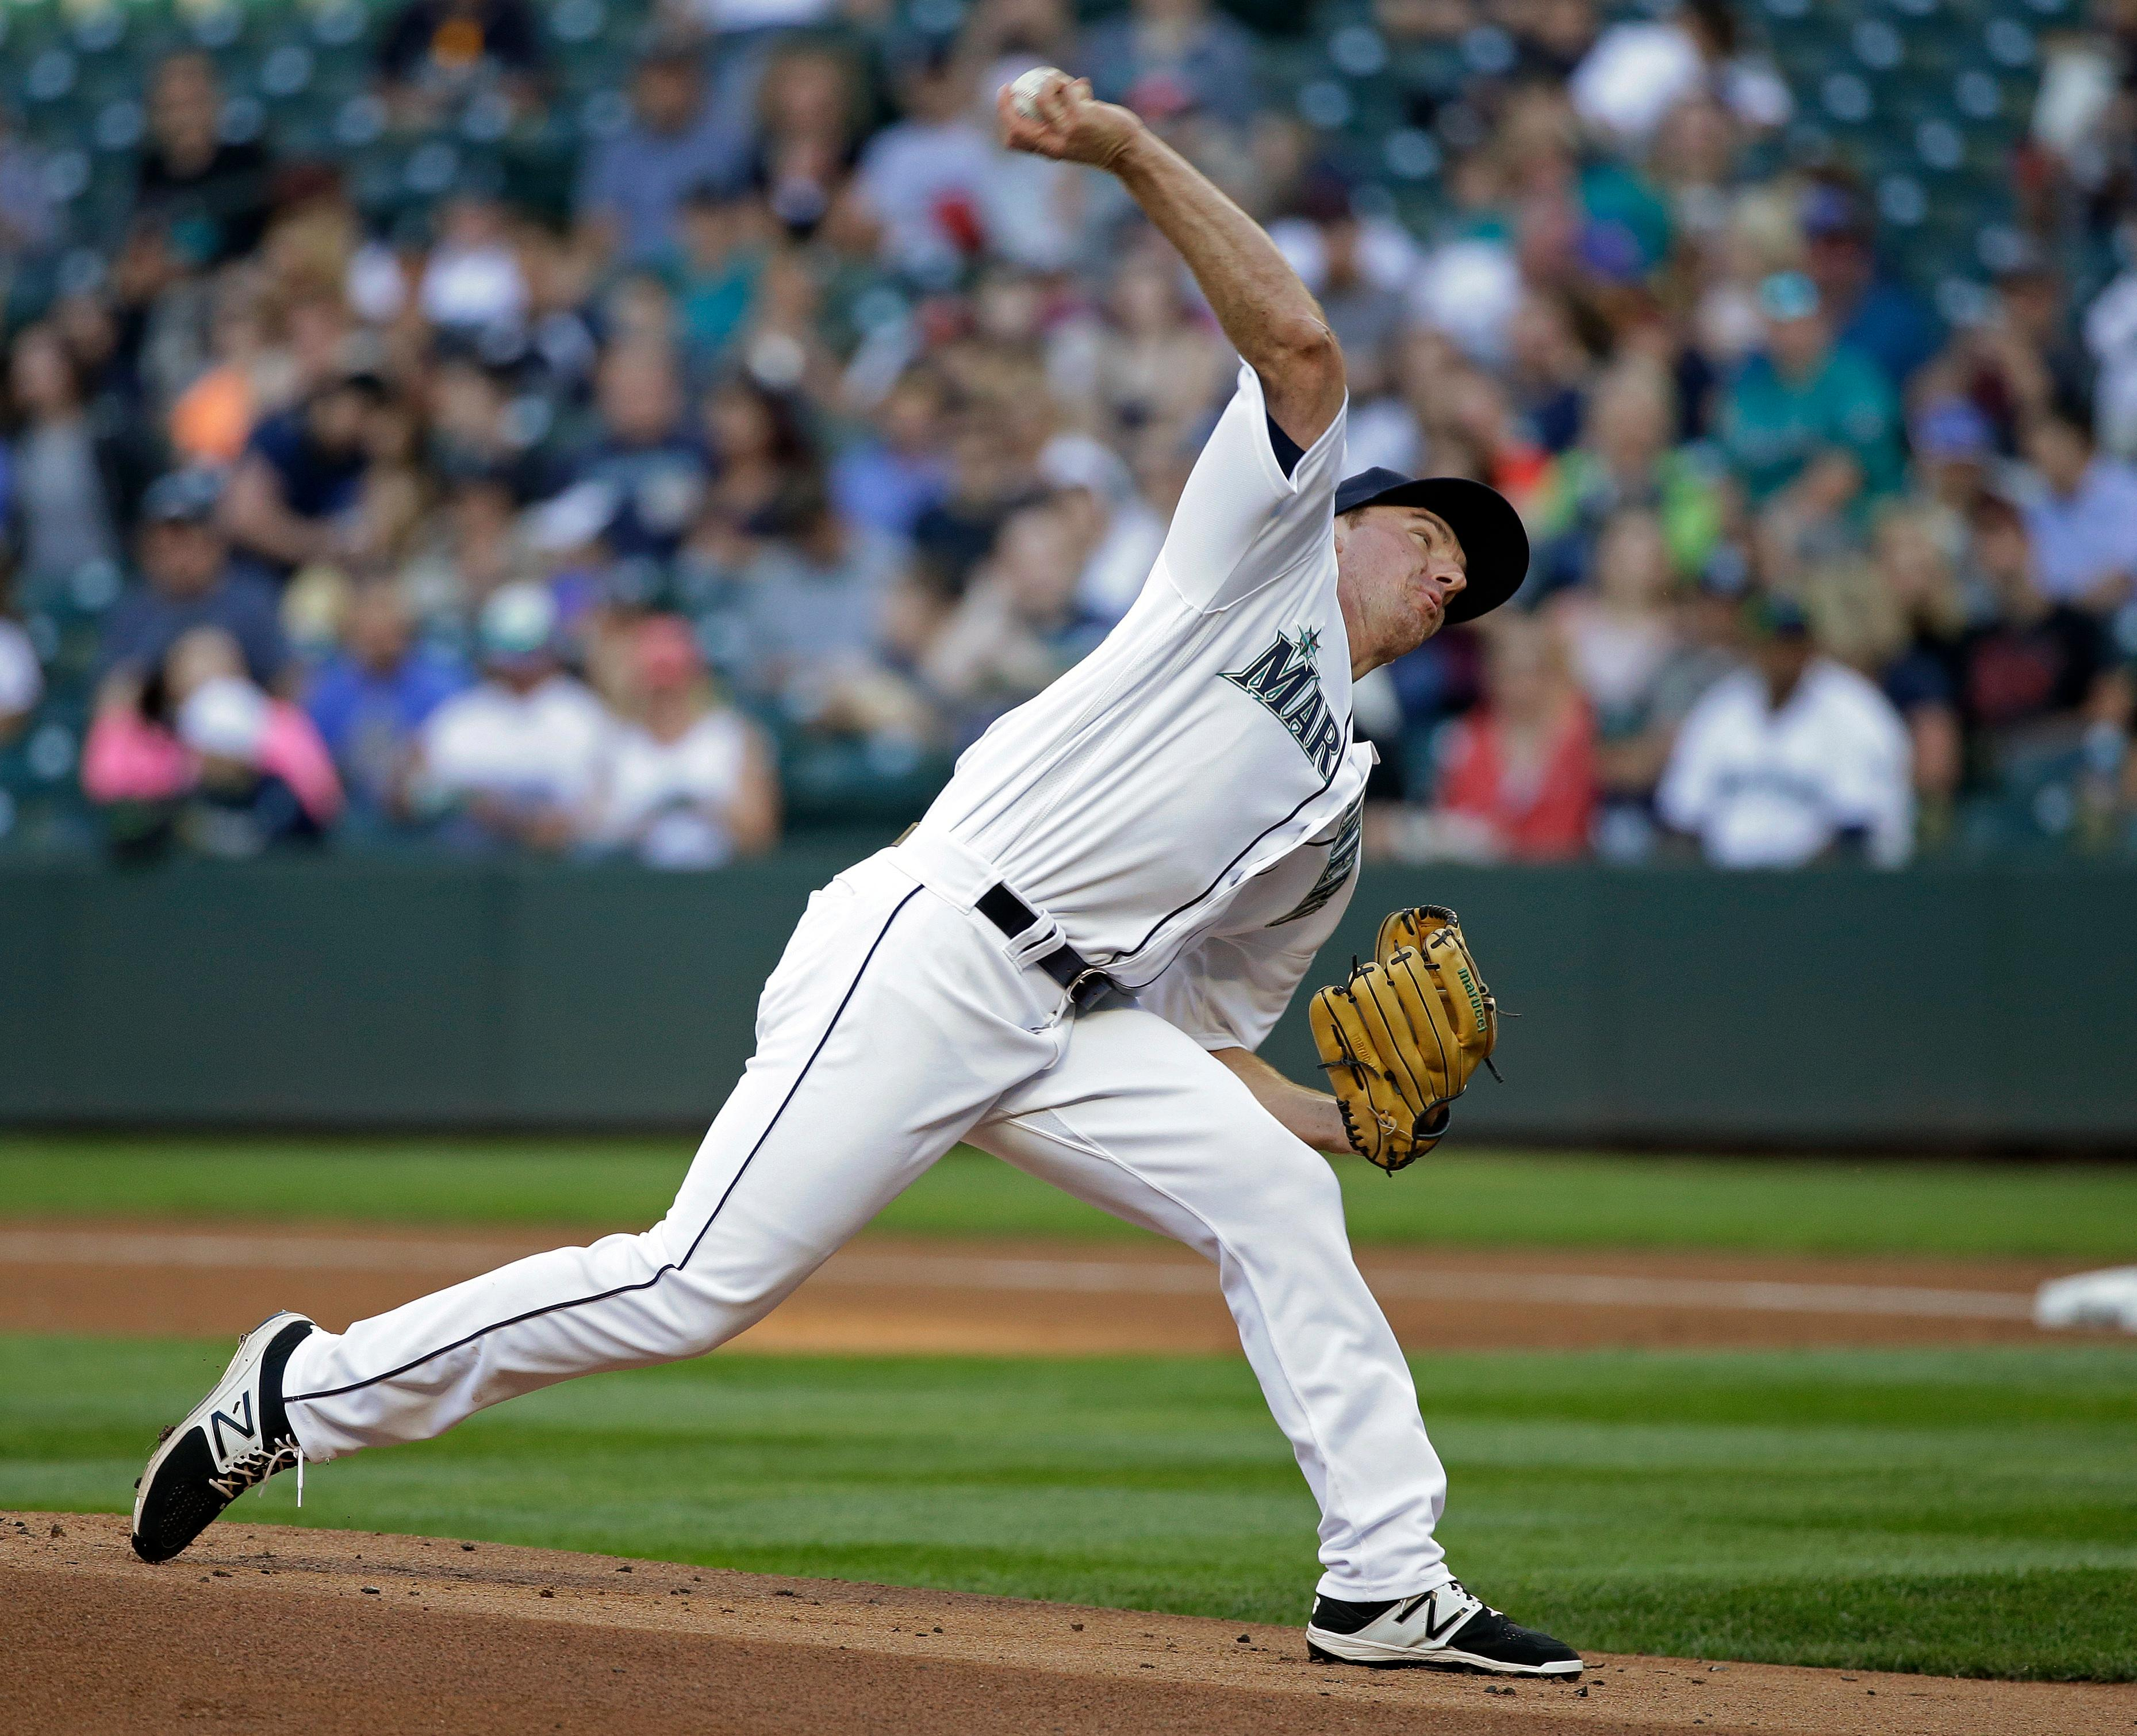 Seattle Mariners starting pitcher Andrew Moore throws his first pitch in the majors, against the Detroit Tigers in the first inning of a baseball game Thursday, June 22, 2017, in Seattle. (AP Photo/Elaine Thompson)